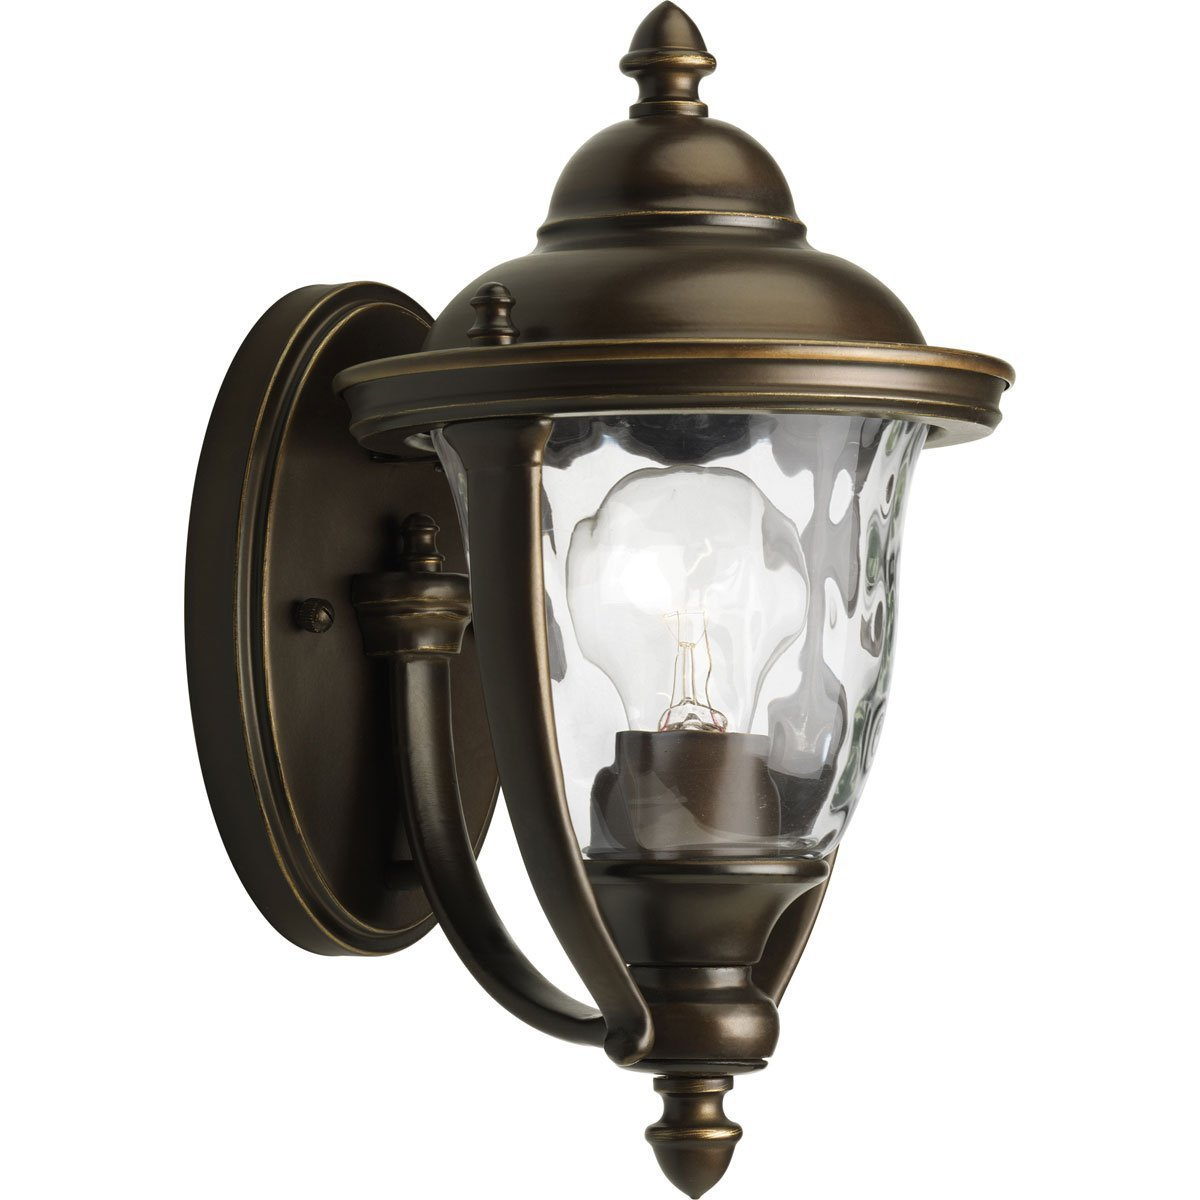 ornate lighting. Ornate Lighting. Lighting Progress Prestwick Collection Wallmount 1light Outdoor Oil Rubbed Bronze Lantern Amazoncom